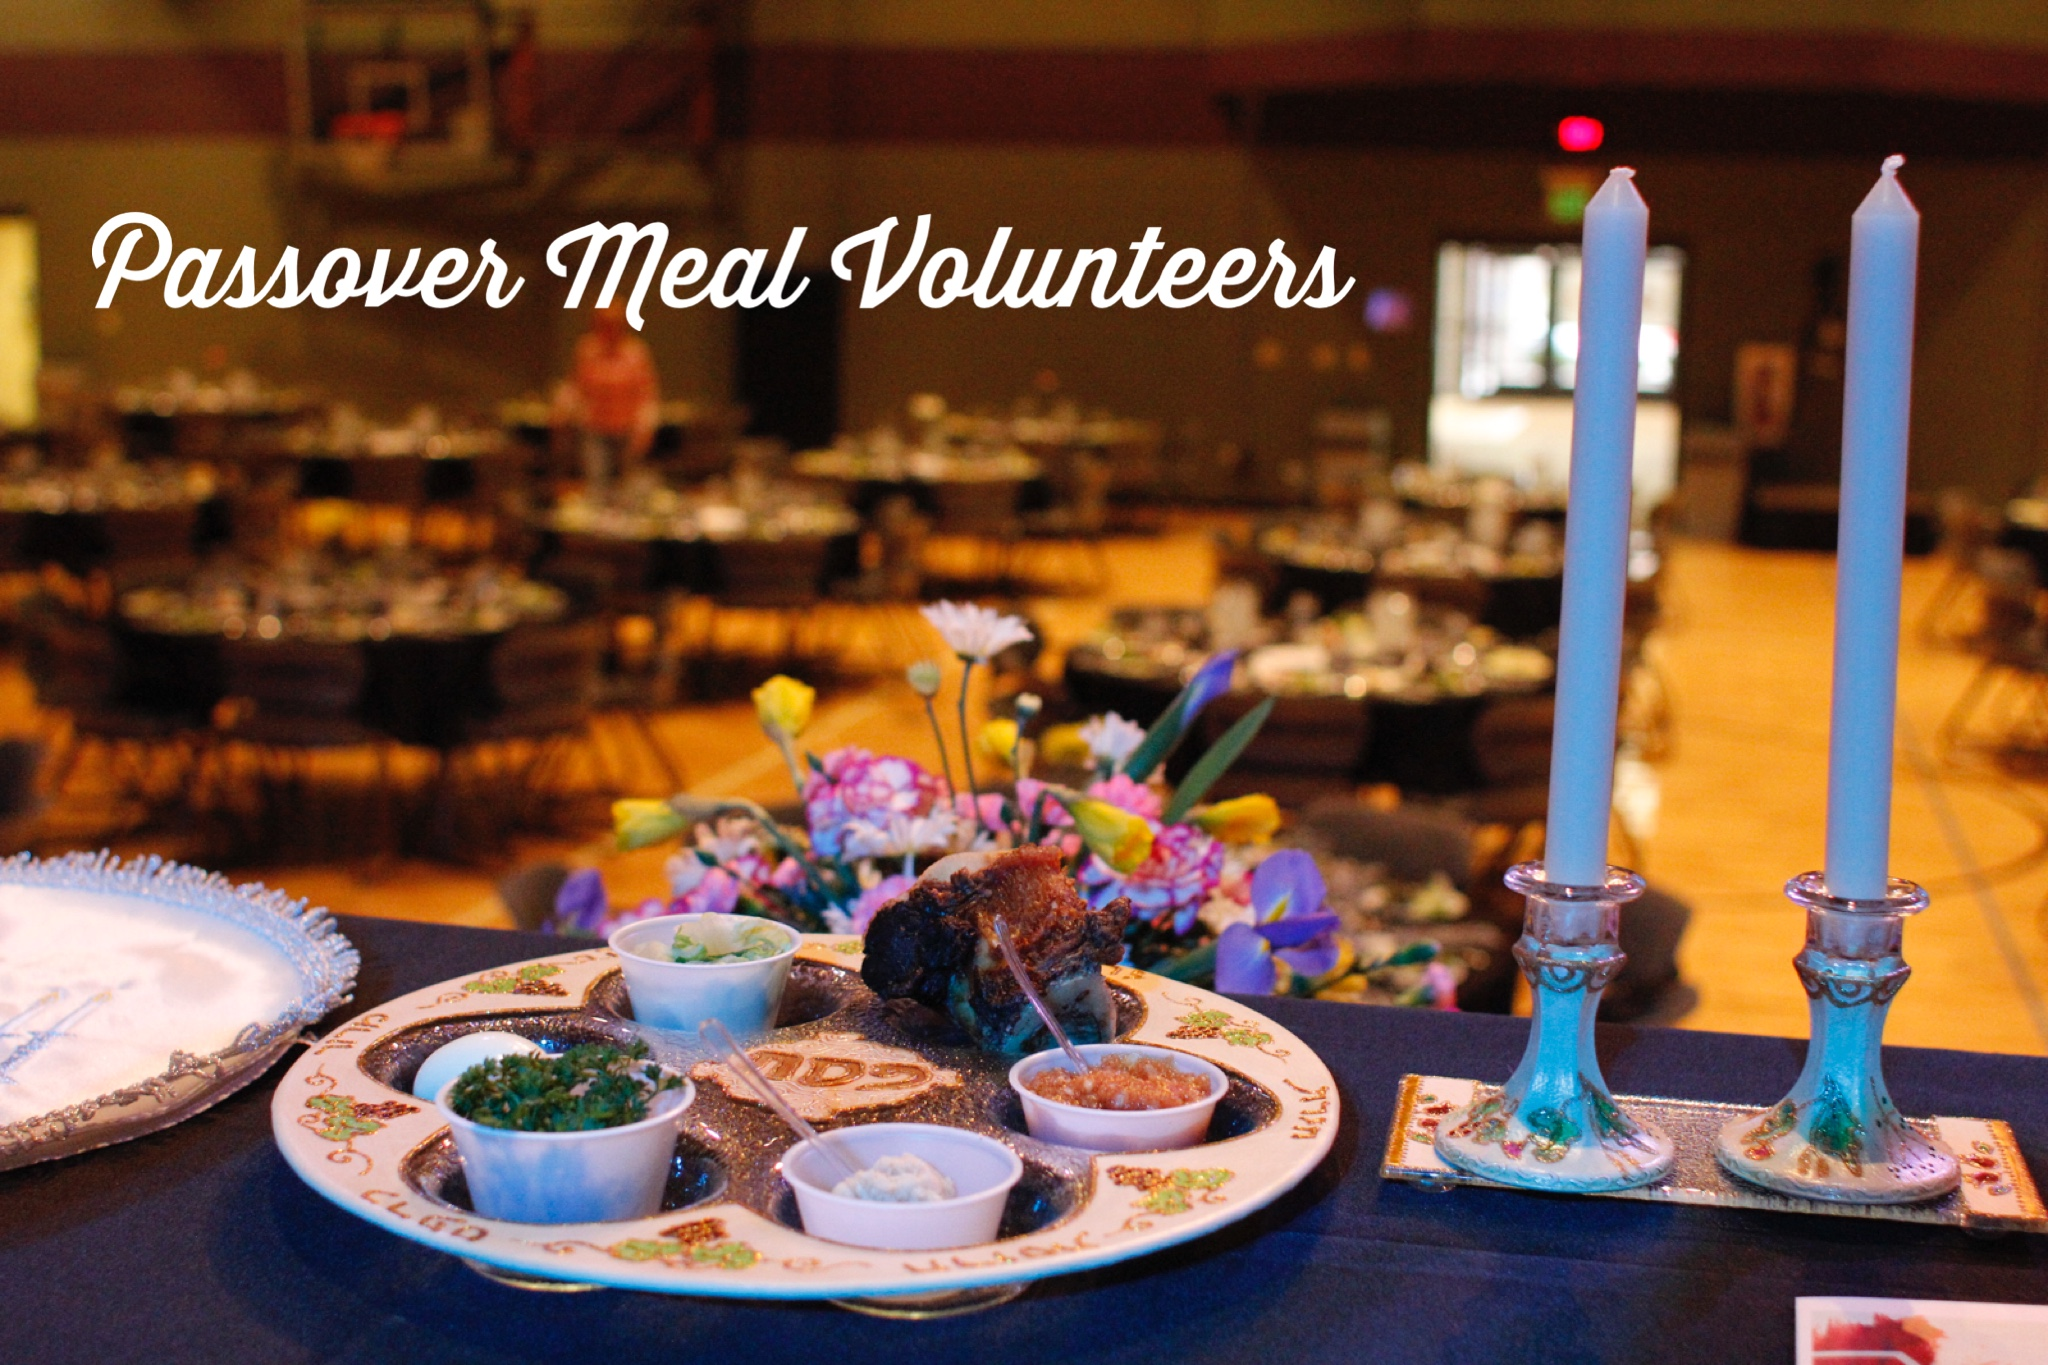 Passover meal volunteers pic